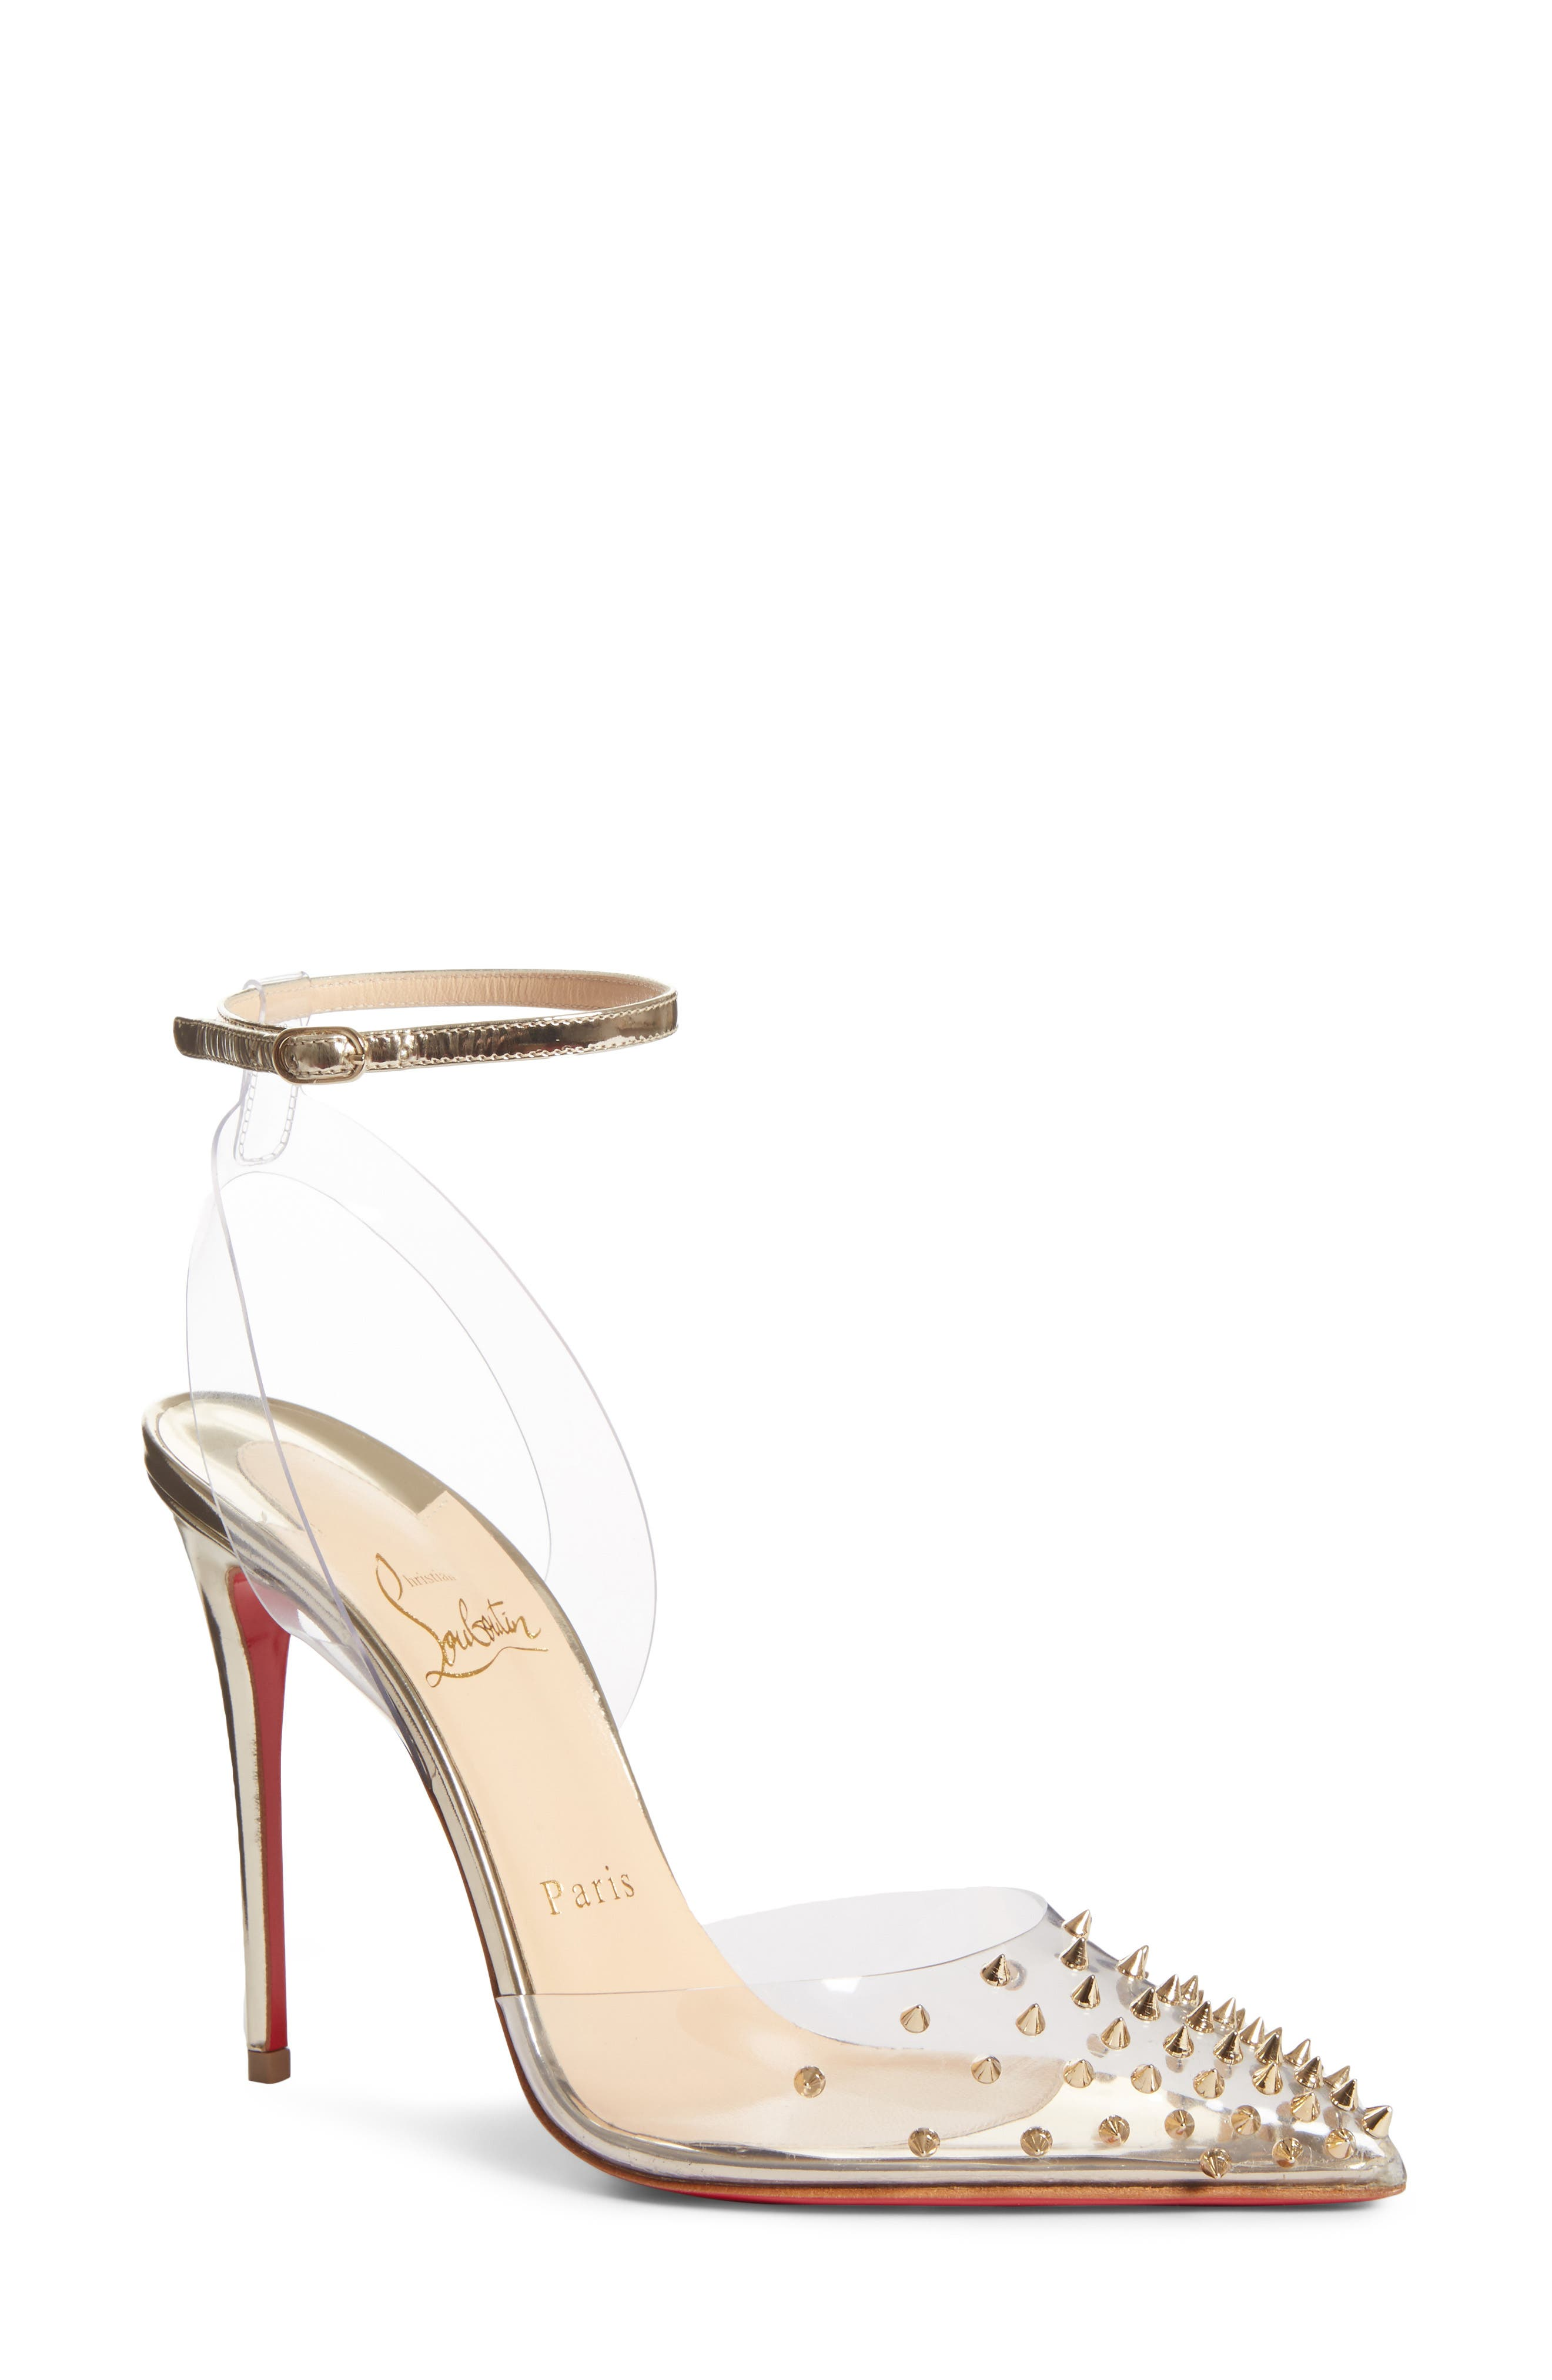 65609a49a Christian Louboutin Spikoo Pvc & Leather Sandals - Transp, Light Gold